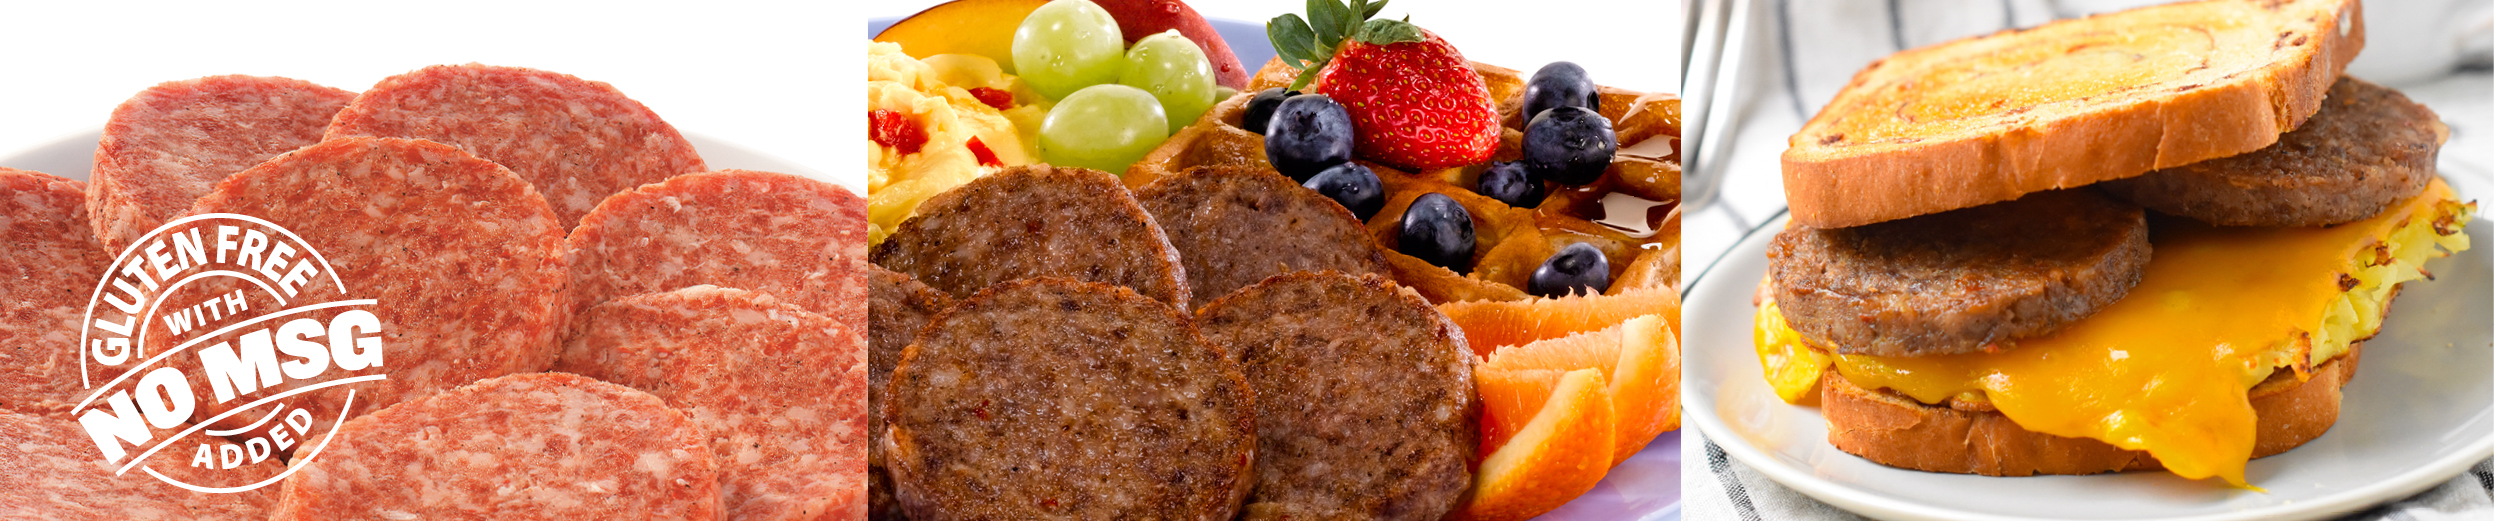 All Natural Premium Pork Sausage Patties